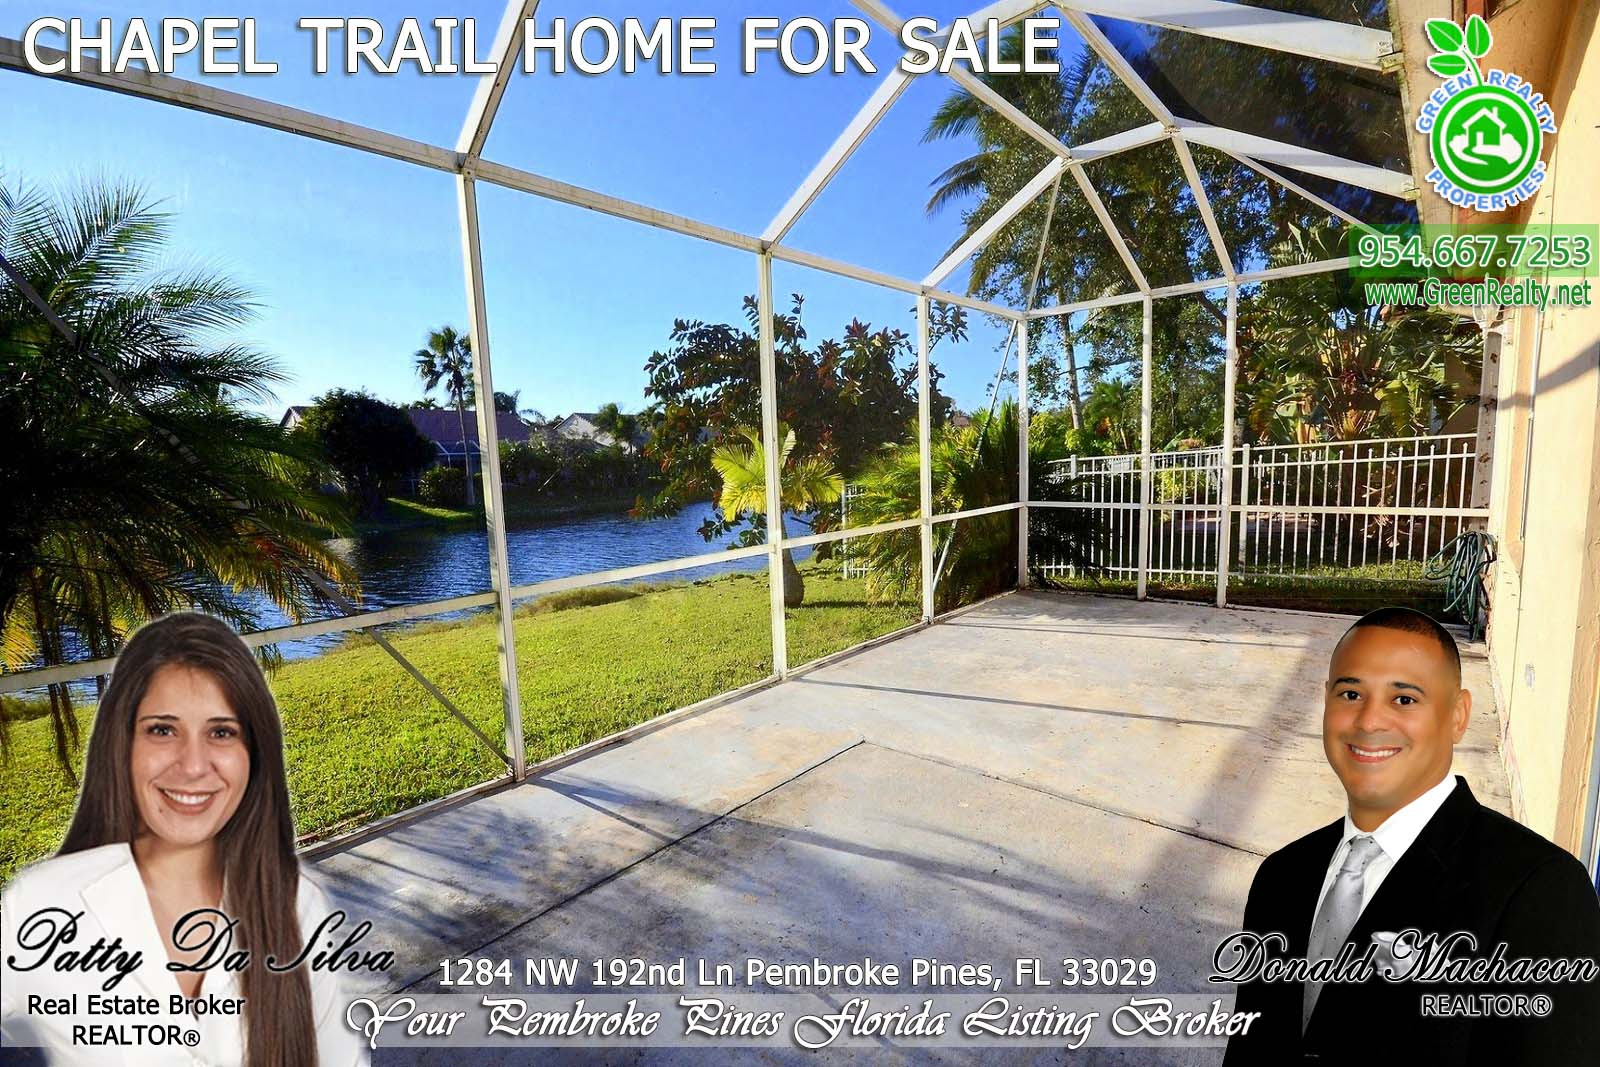 24 Pembroke Pines Homes For Sale (2)